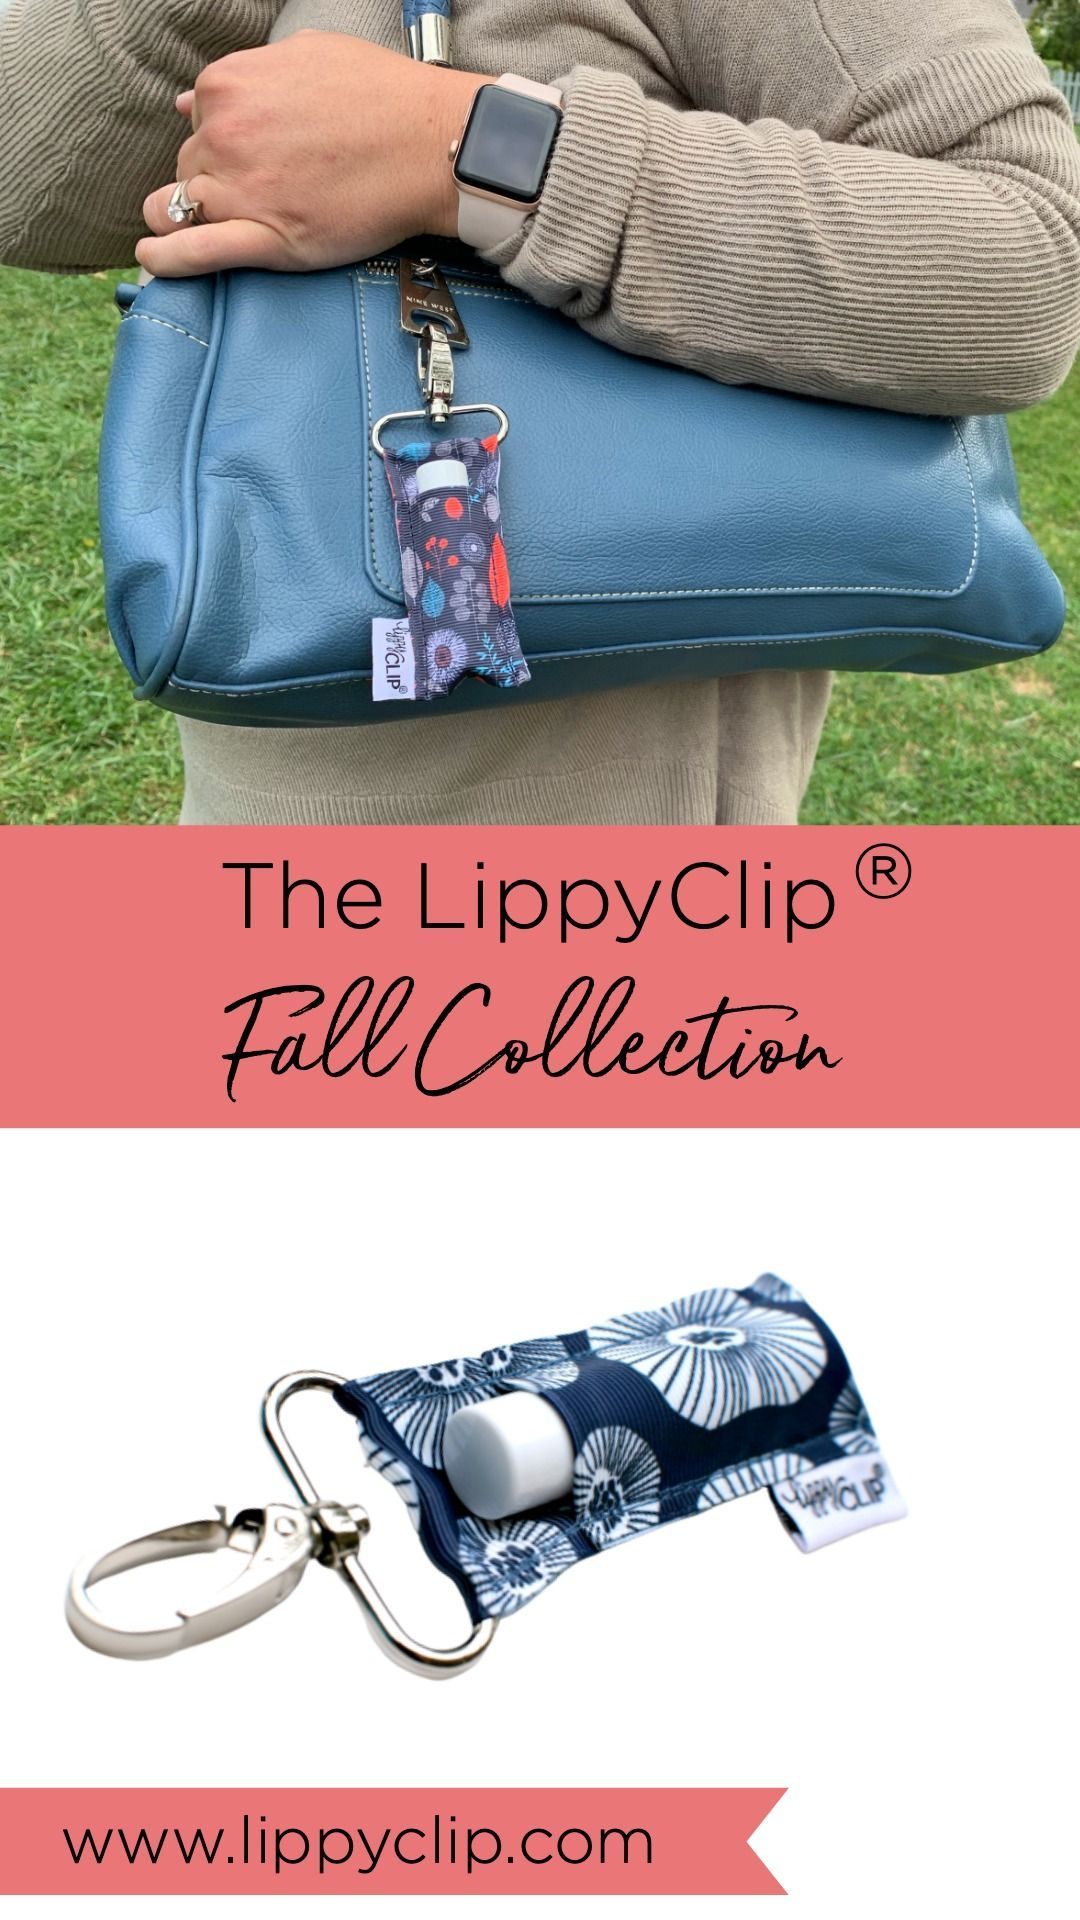 LippyClip the original lip balm holder When youre on the go its frustrating to have to search for your lip balm Let us help you shave a few moments off and get you out th...